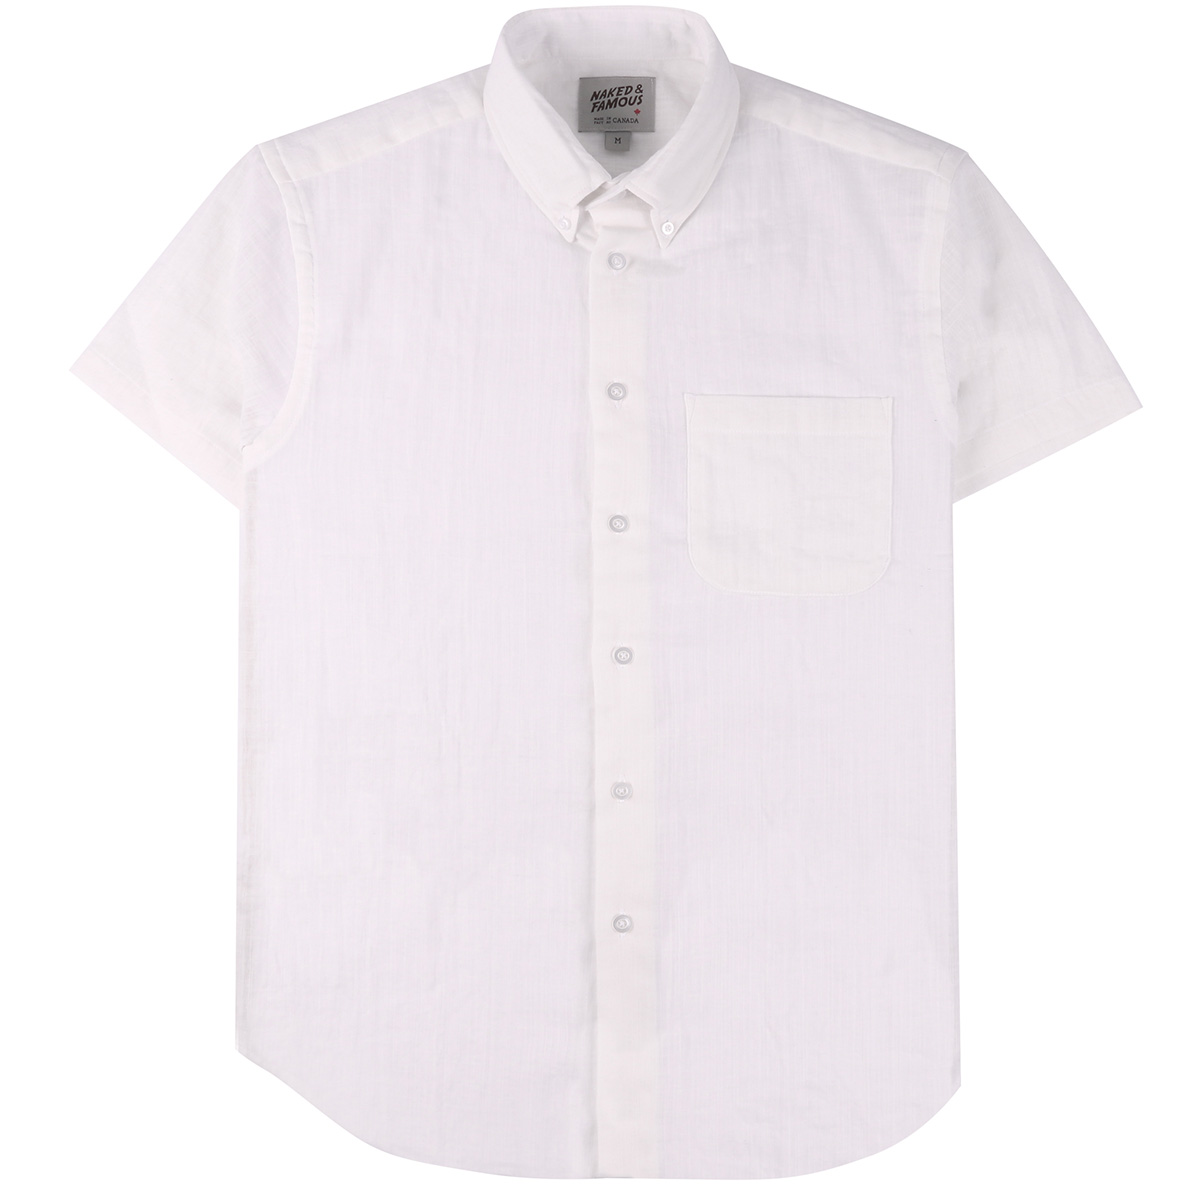 DOUBLE WEAVE GAUZE SLUB - WHITE - Short Sleeve Easy Shirt